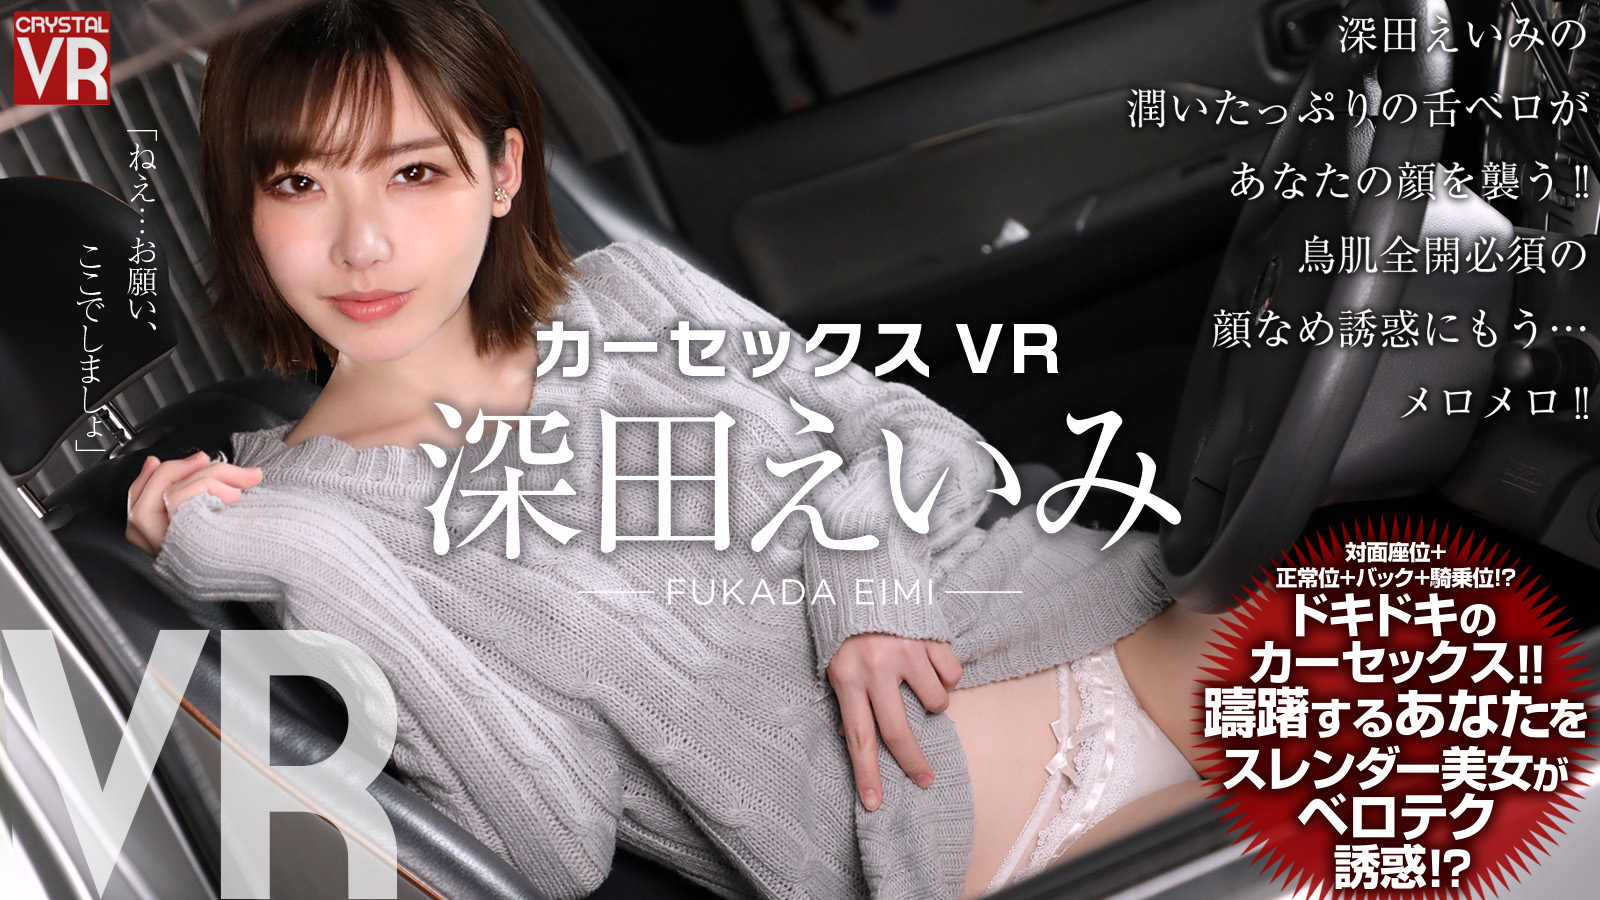 Adult VR Videos:[4K Takumi] The car sex in VR! A slender beauty will tempt you with her tongue! Featuring Eimi Fukada.